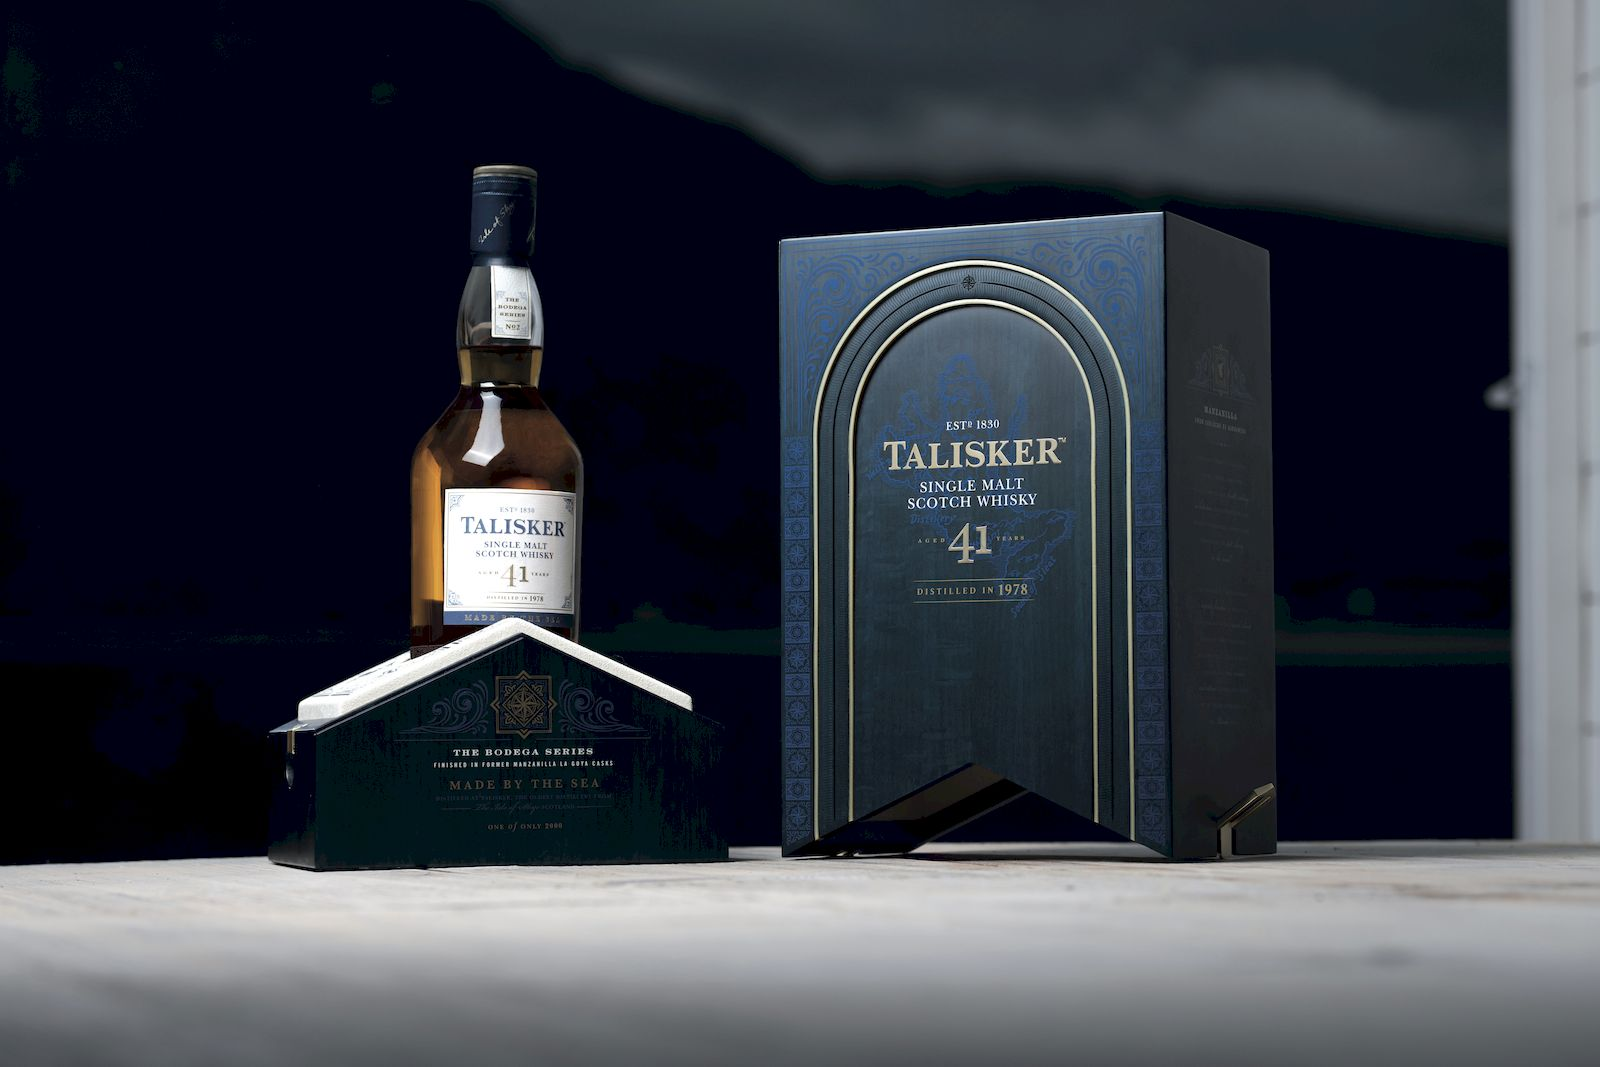 What makes a whisky truly rare and exceptional?